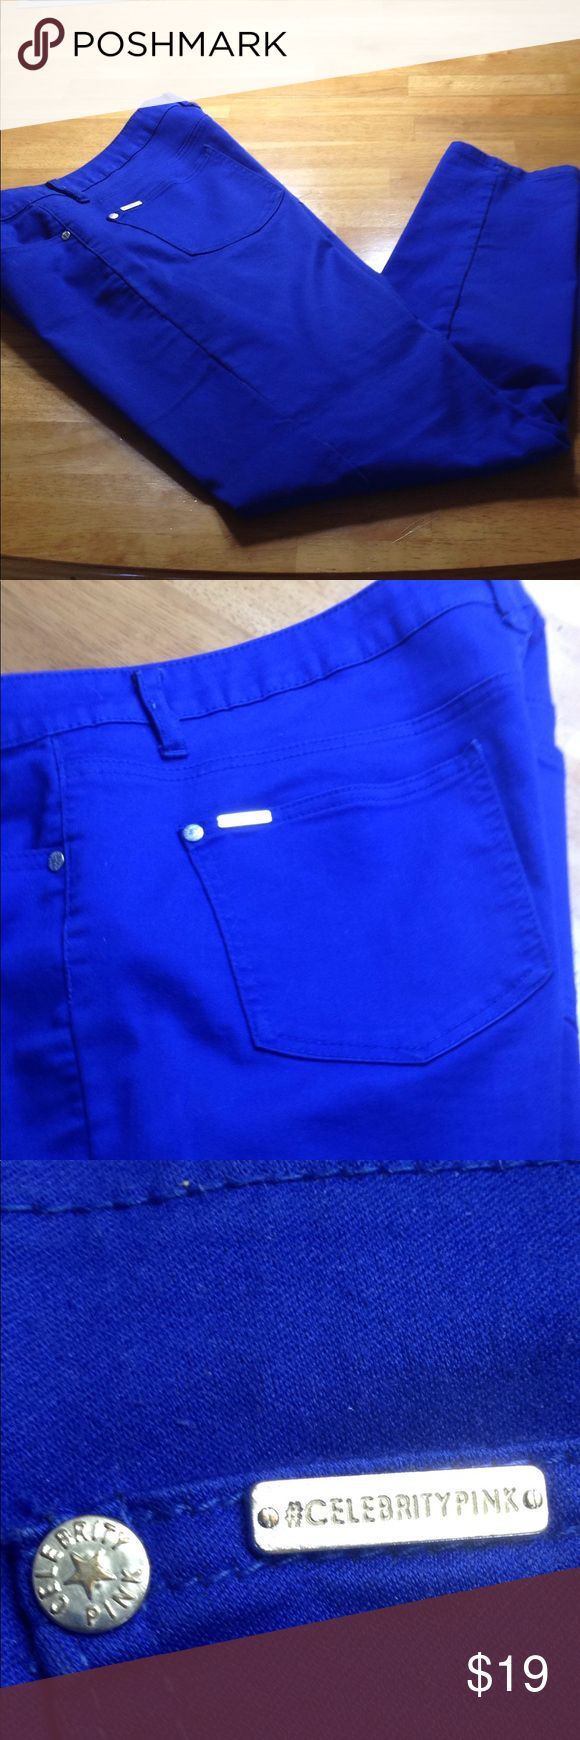 Royal Blue Jean Style Pants Worn a few times. Nice royal blue size 15 stretchy jean style pants with front and back pockets. No tears or stains. By CelebrityPink. CelebrityPink Pants Straight Leg